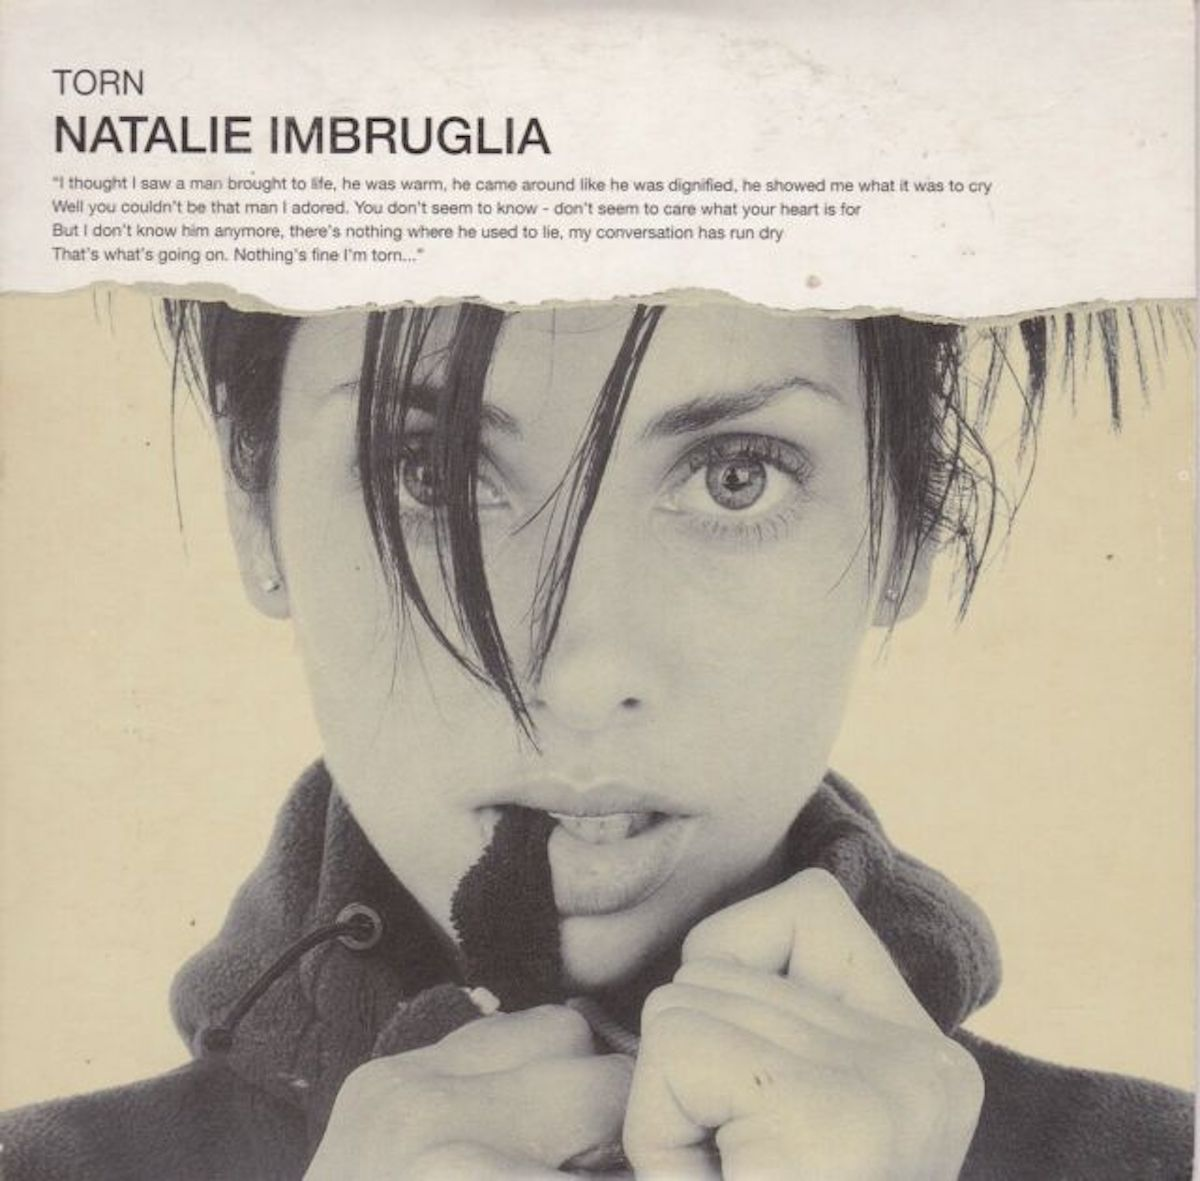 torn album cover from Natalie Imbruglia